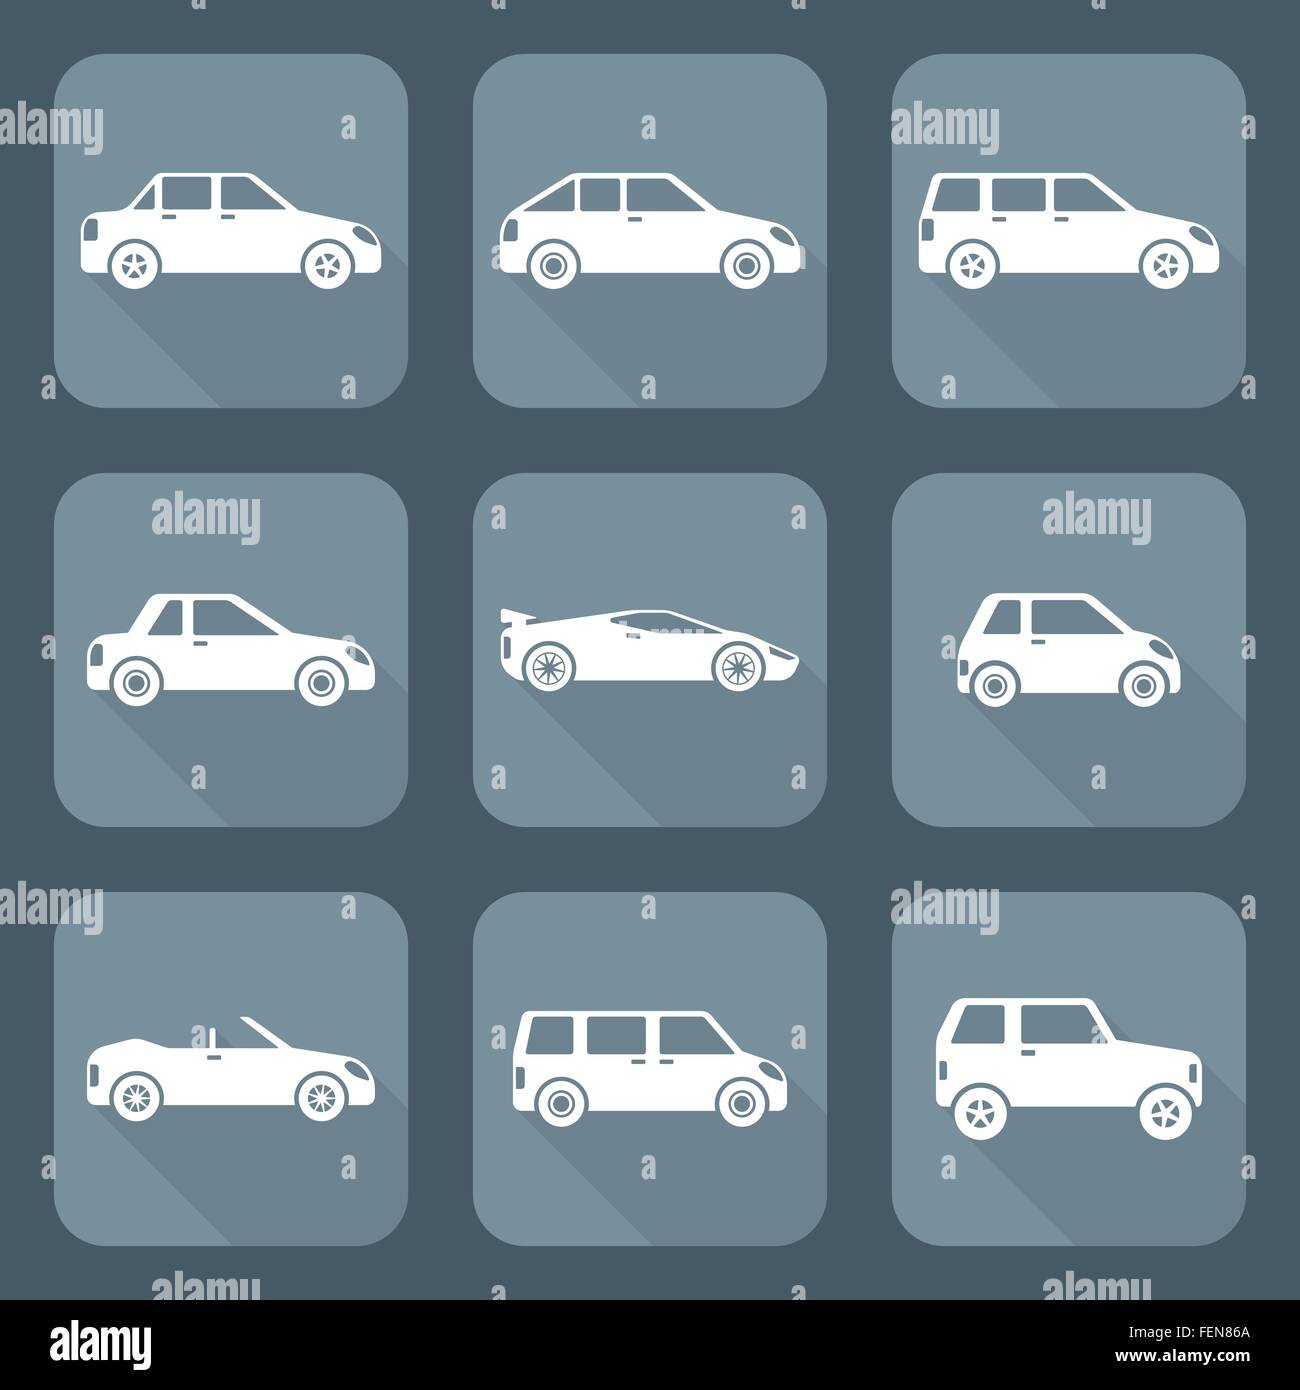 Vector White Flat Design Various Body Types Of Cars Classification Stock Vector Image Art Alamy